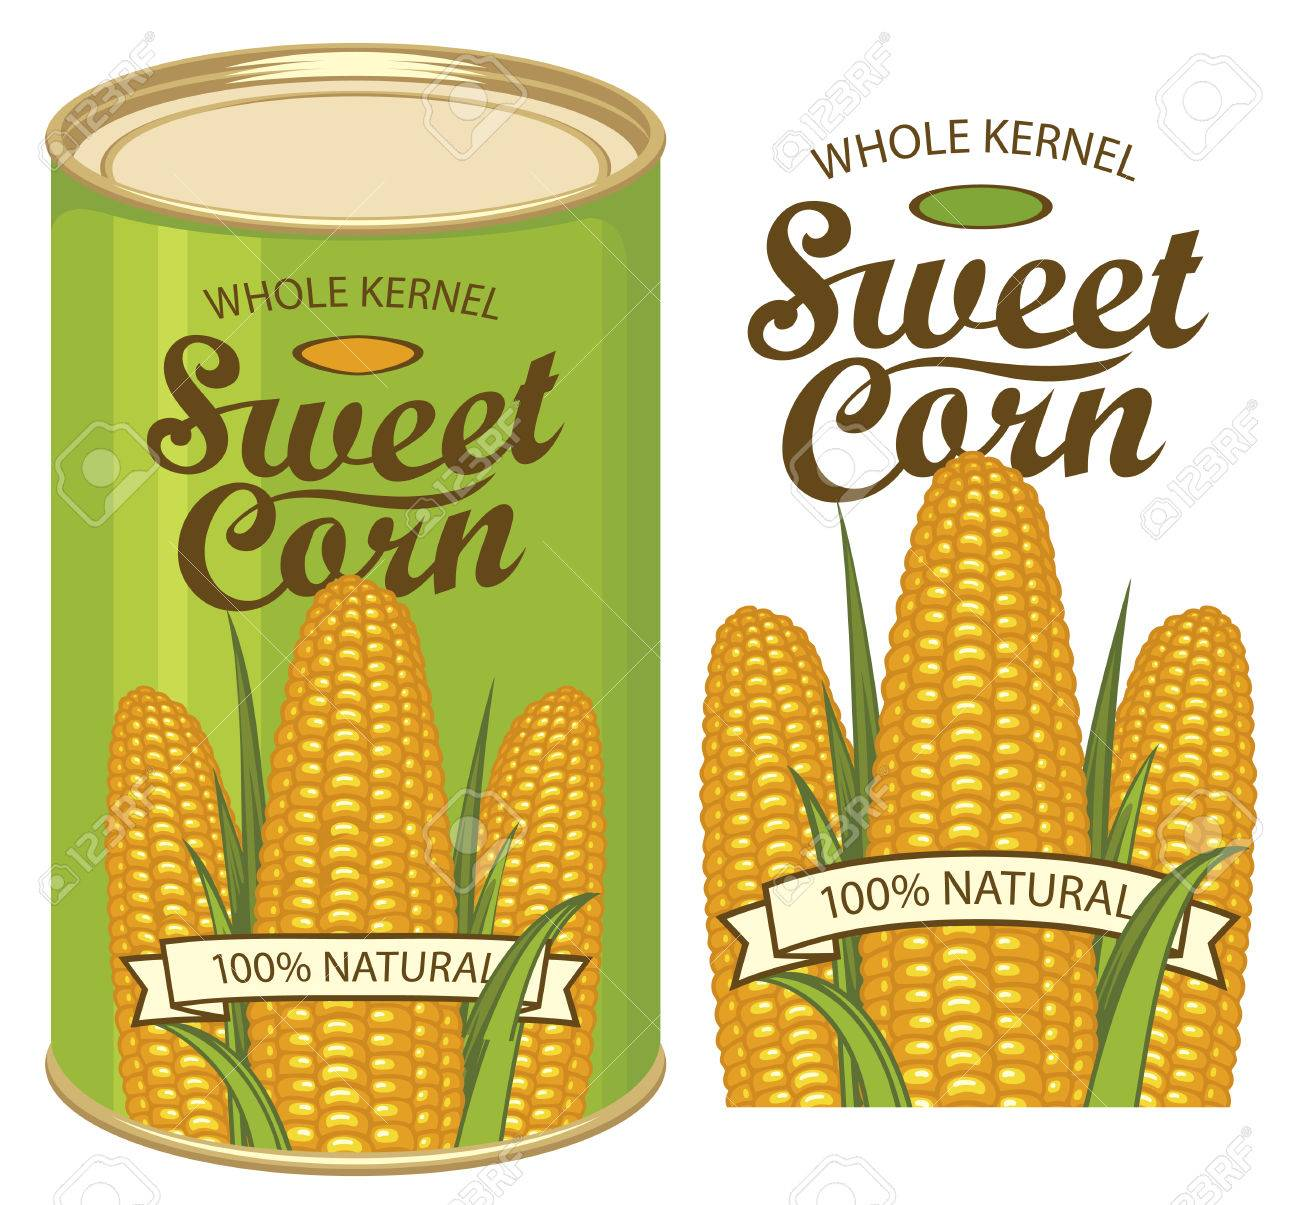 vector illustration of green tin can with a label for canned